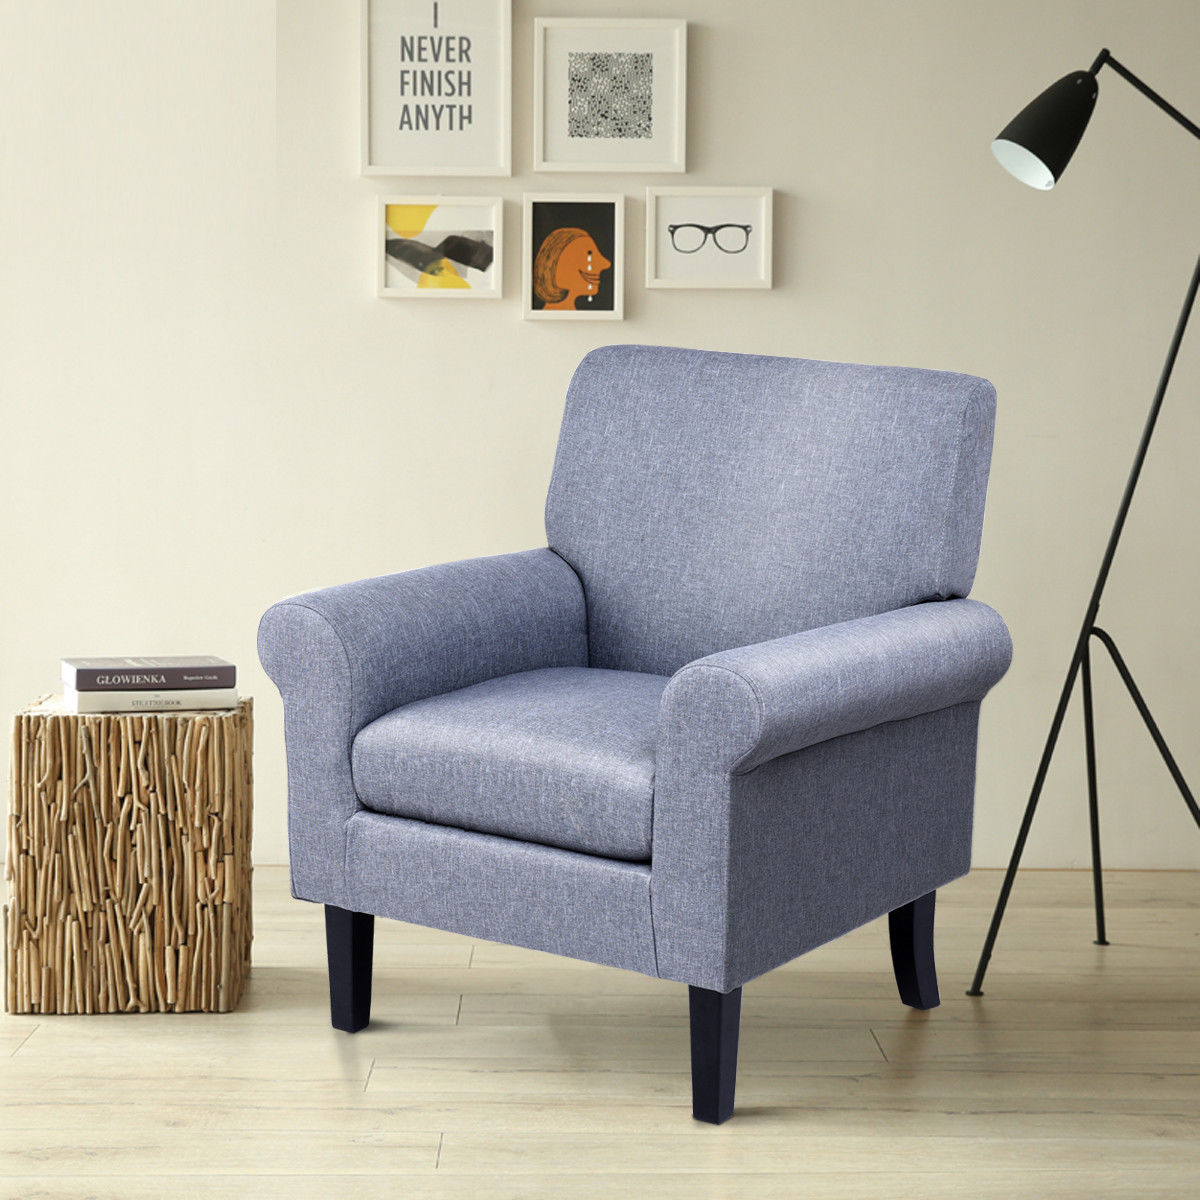 Gymax Fabirc Club Chair Accent Arm Chair Upholstered